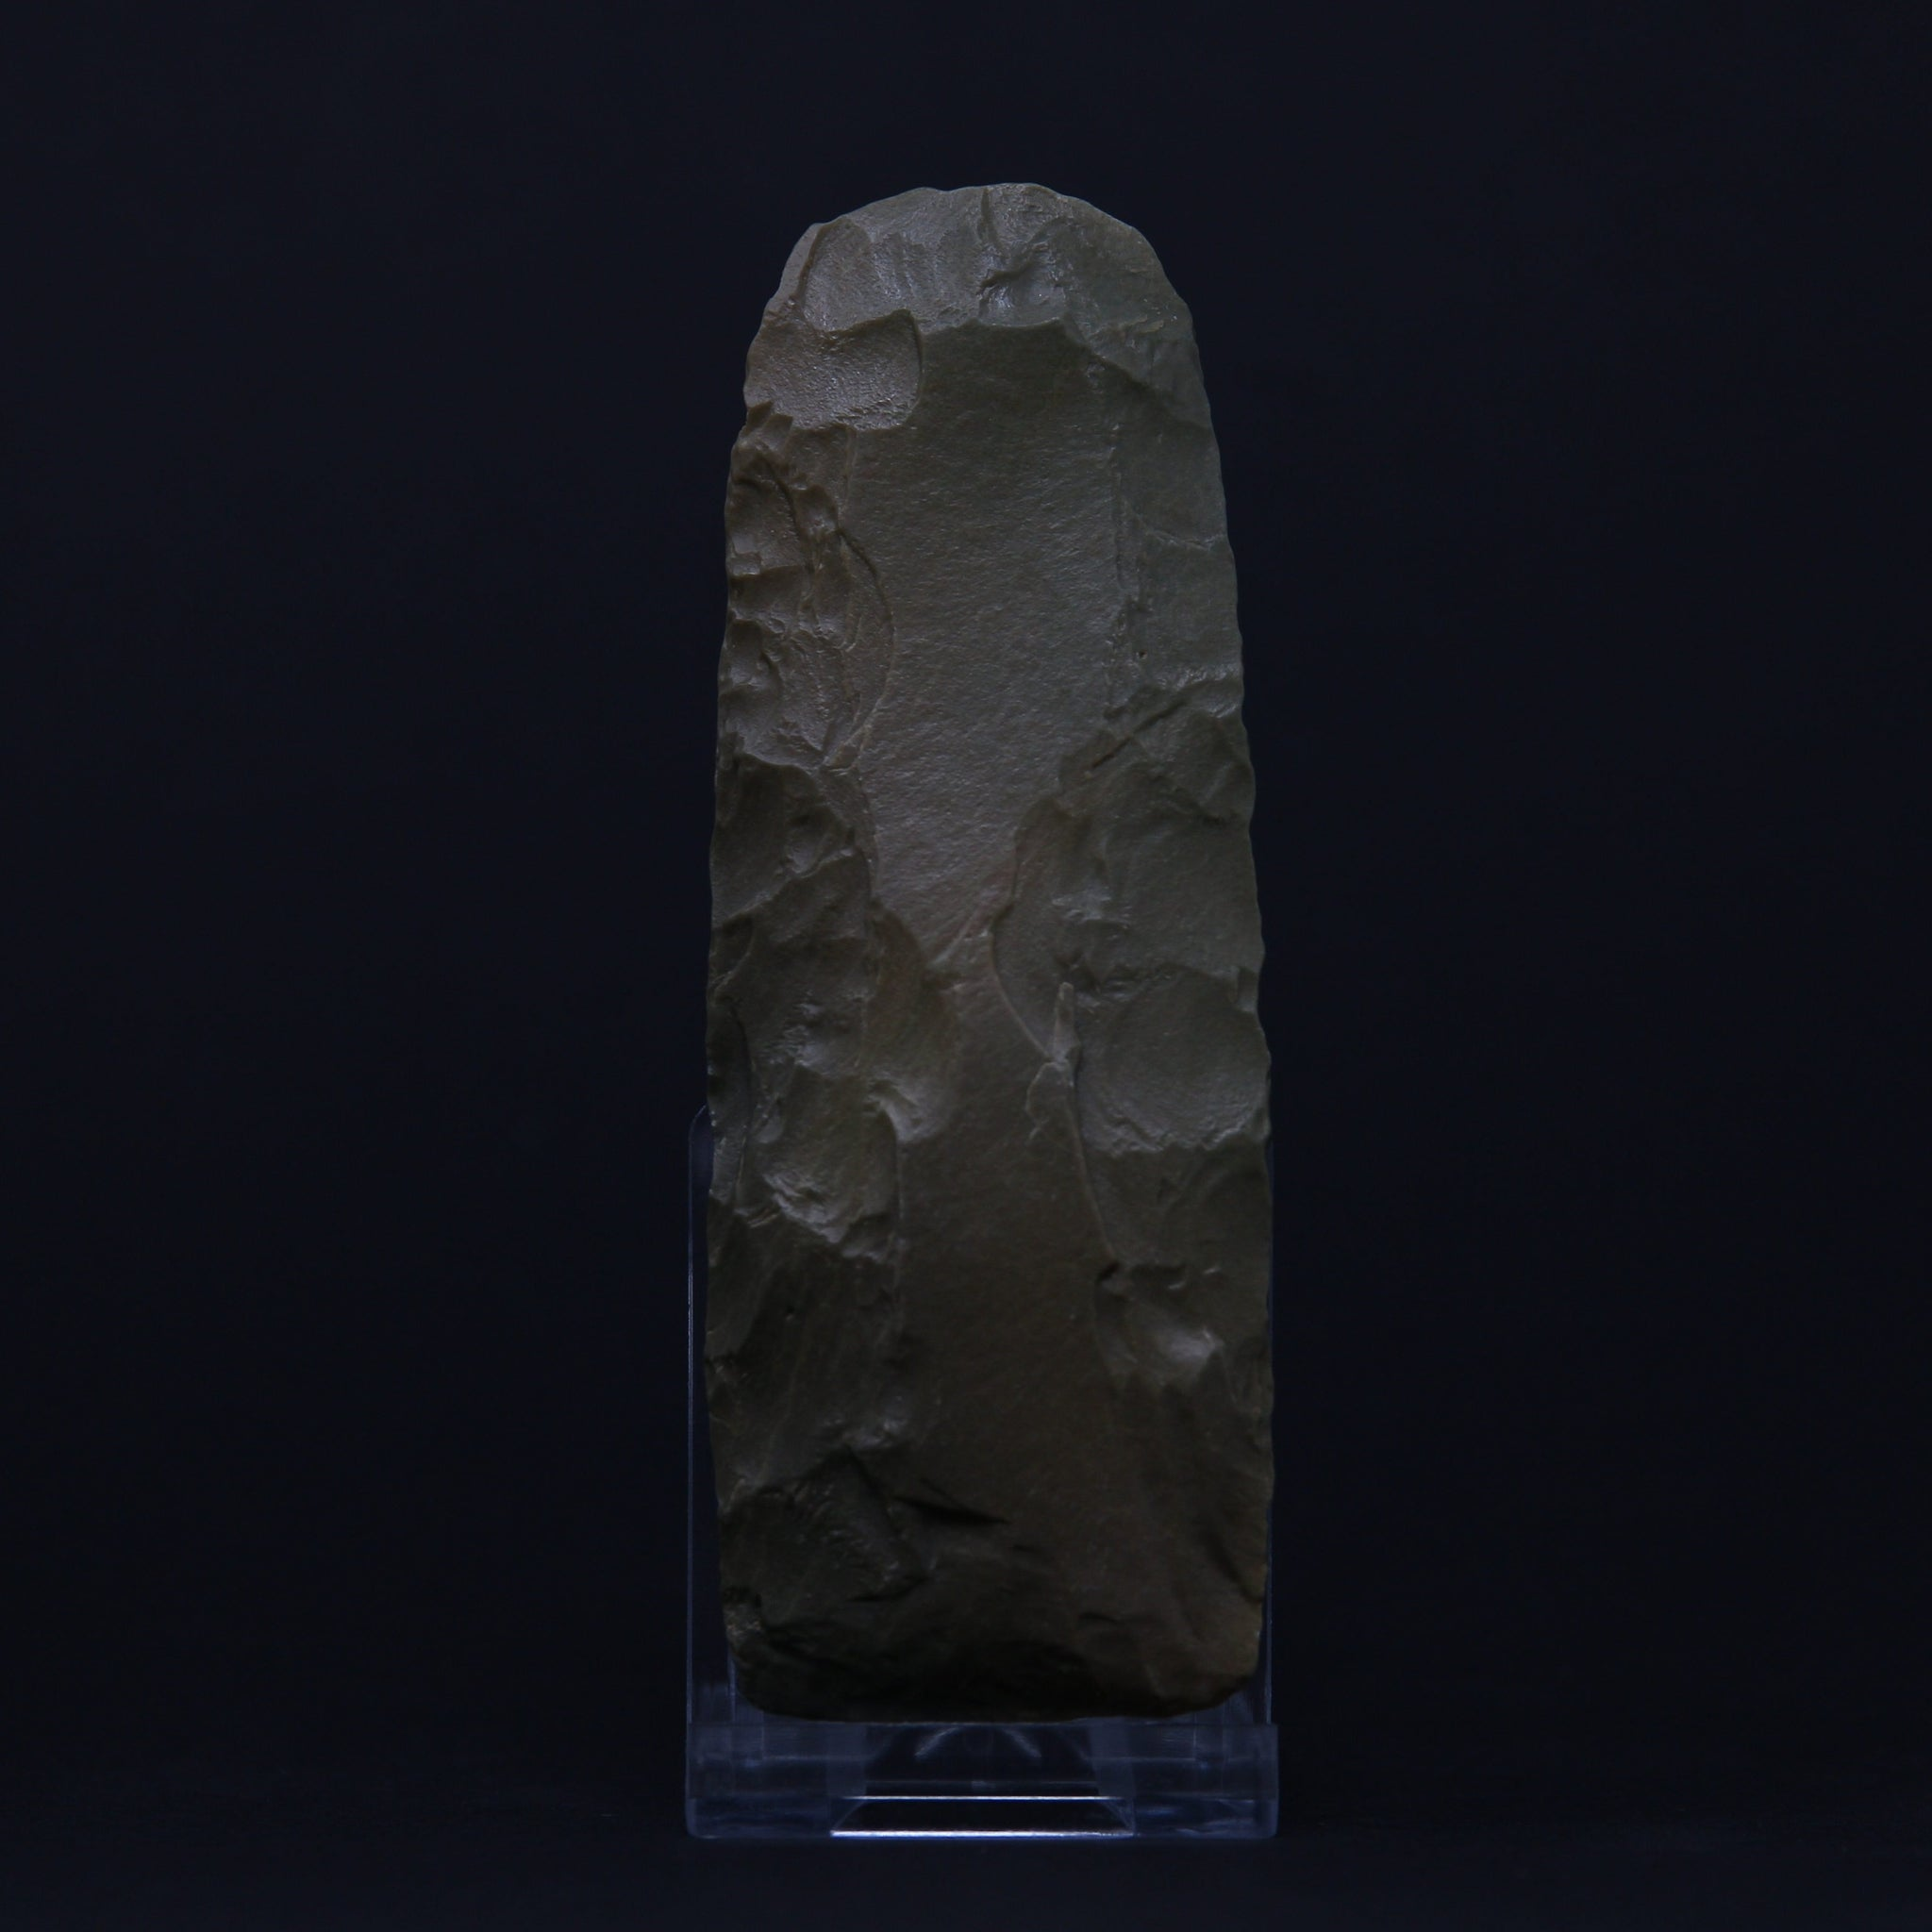 A Neolithic finely worked polished jasper axe |  Tenerean-culture, 7200-4500 BP